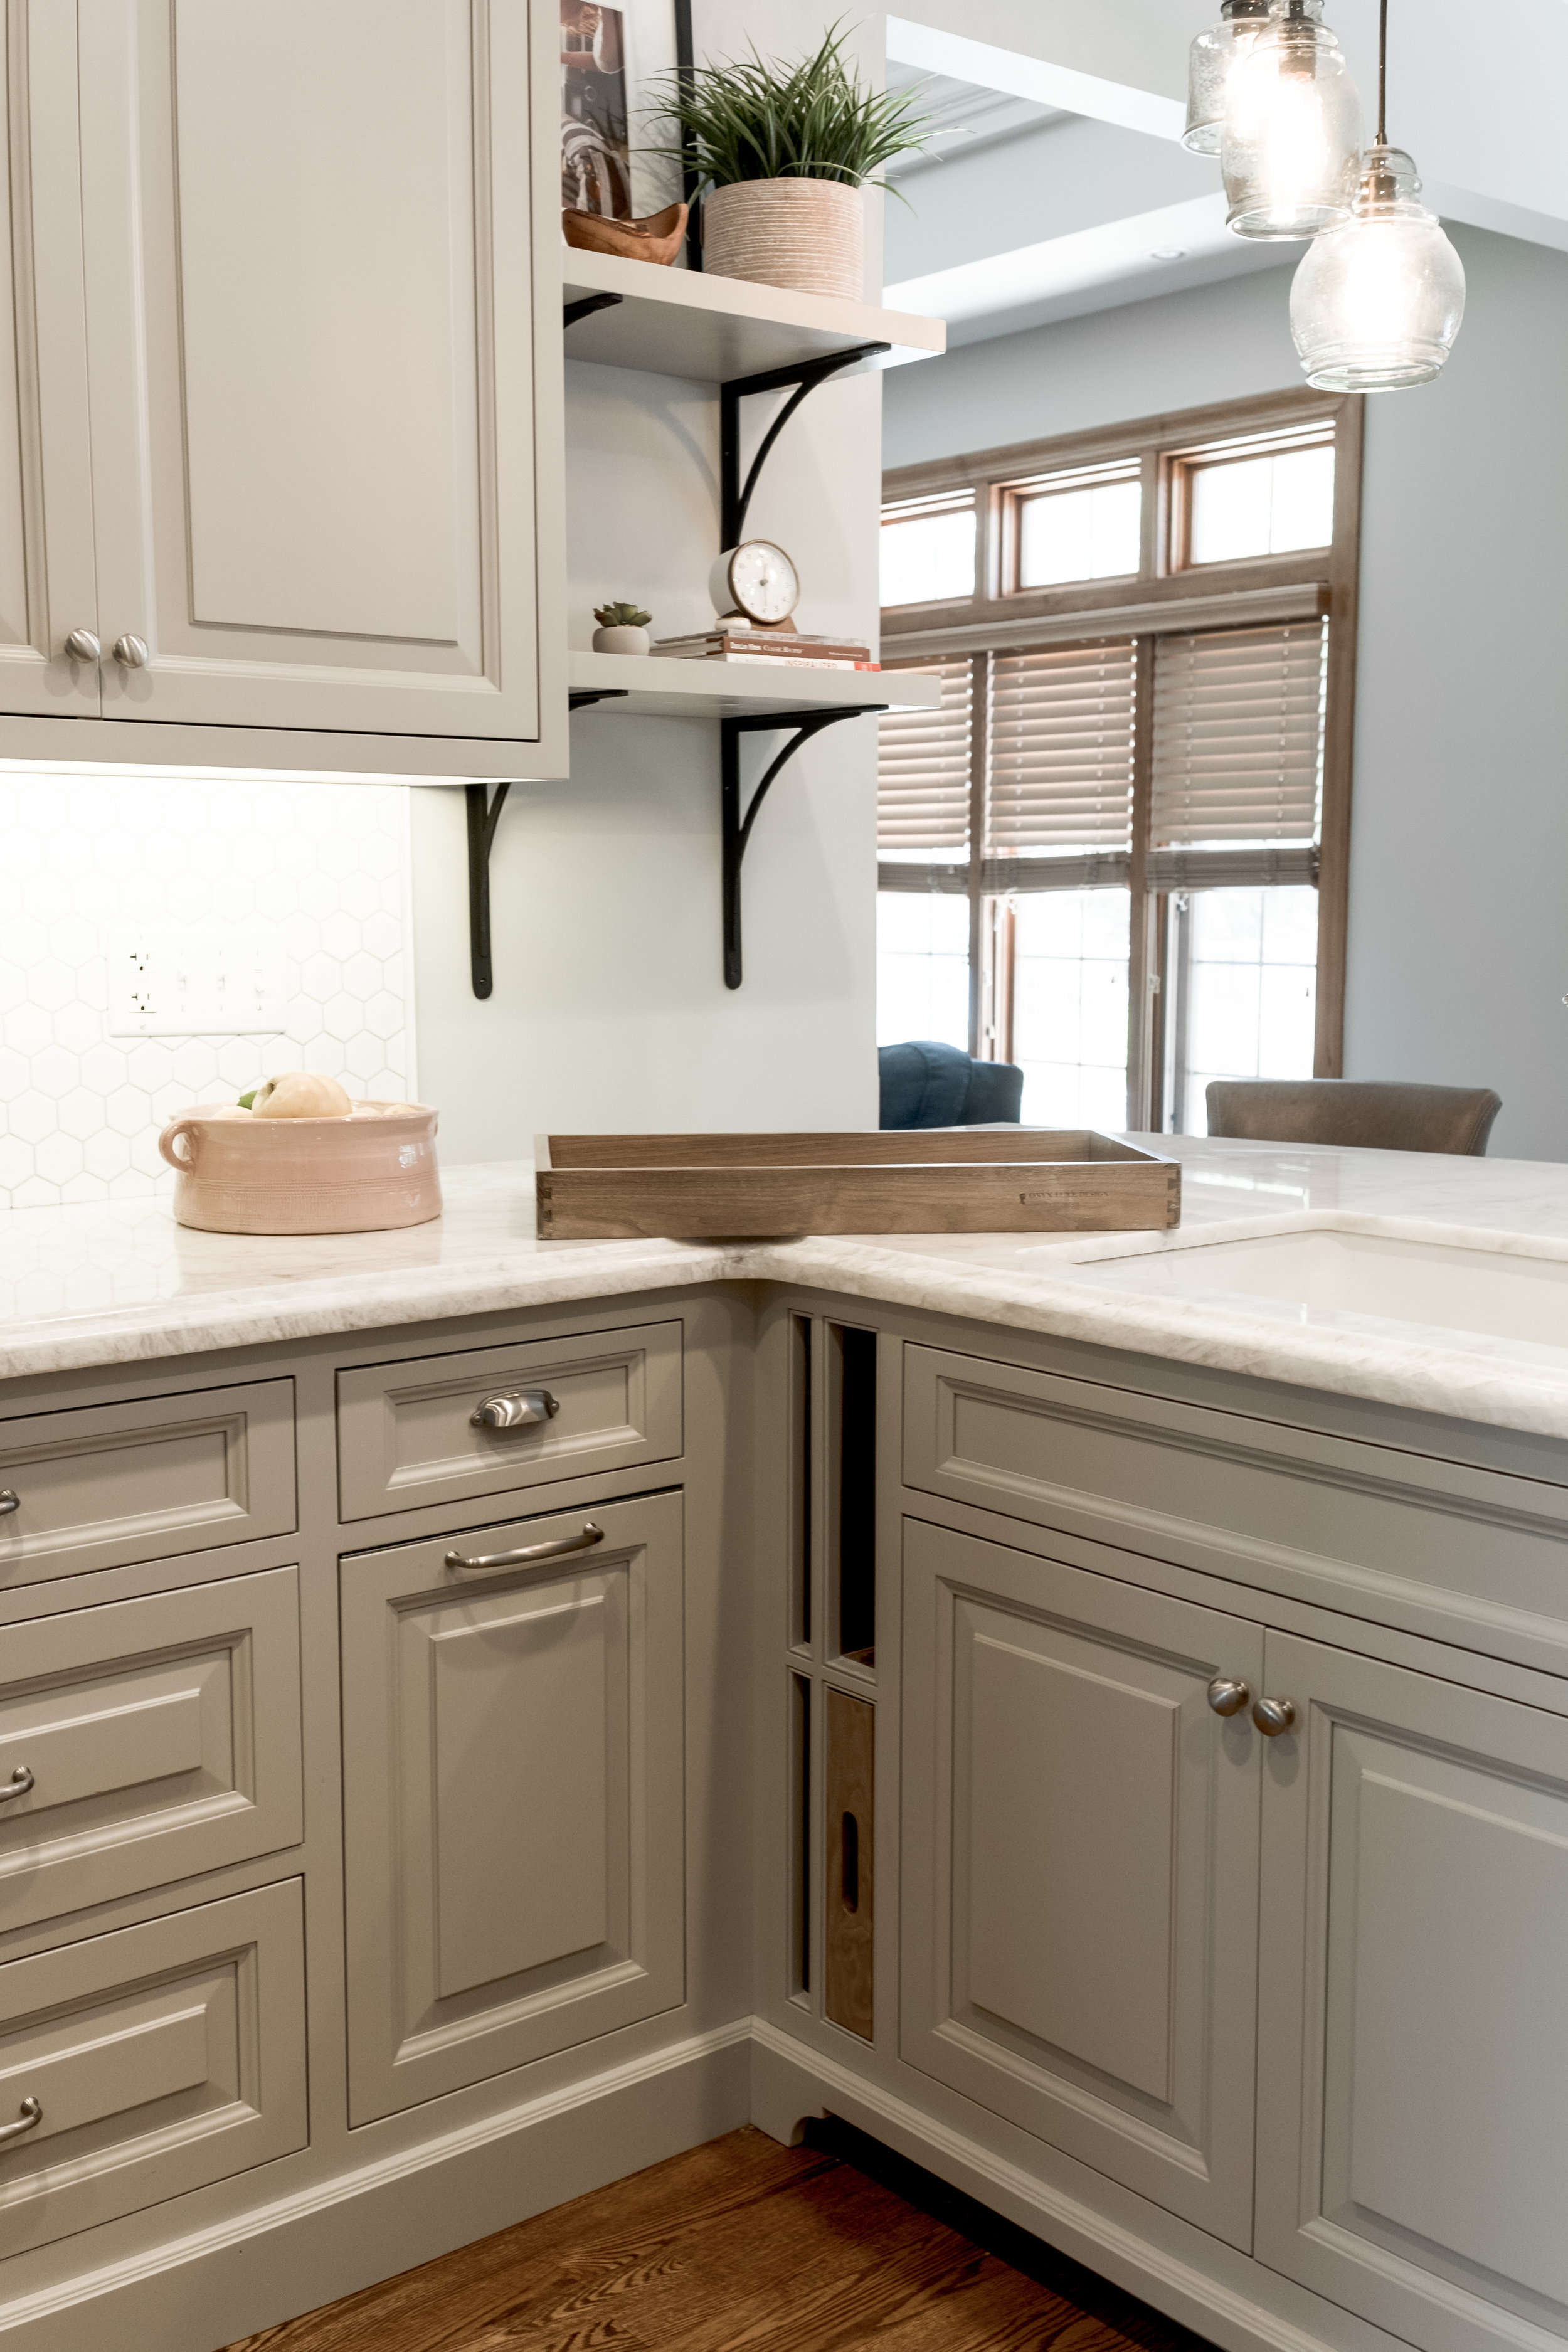 Kitchen cabinets with built in cutting boards